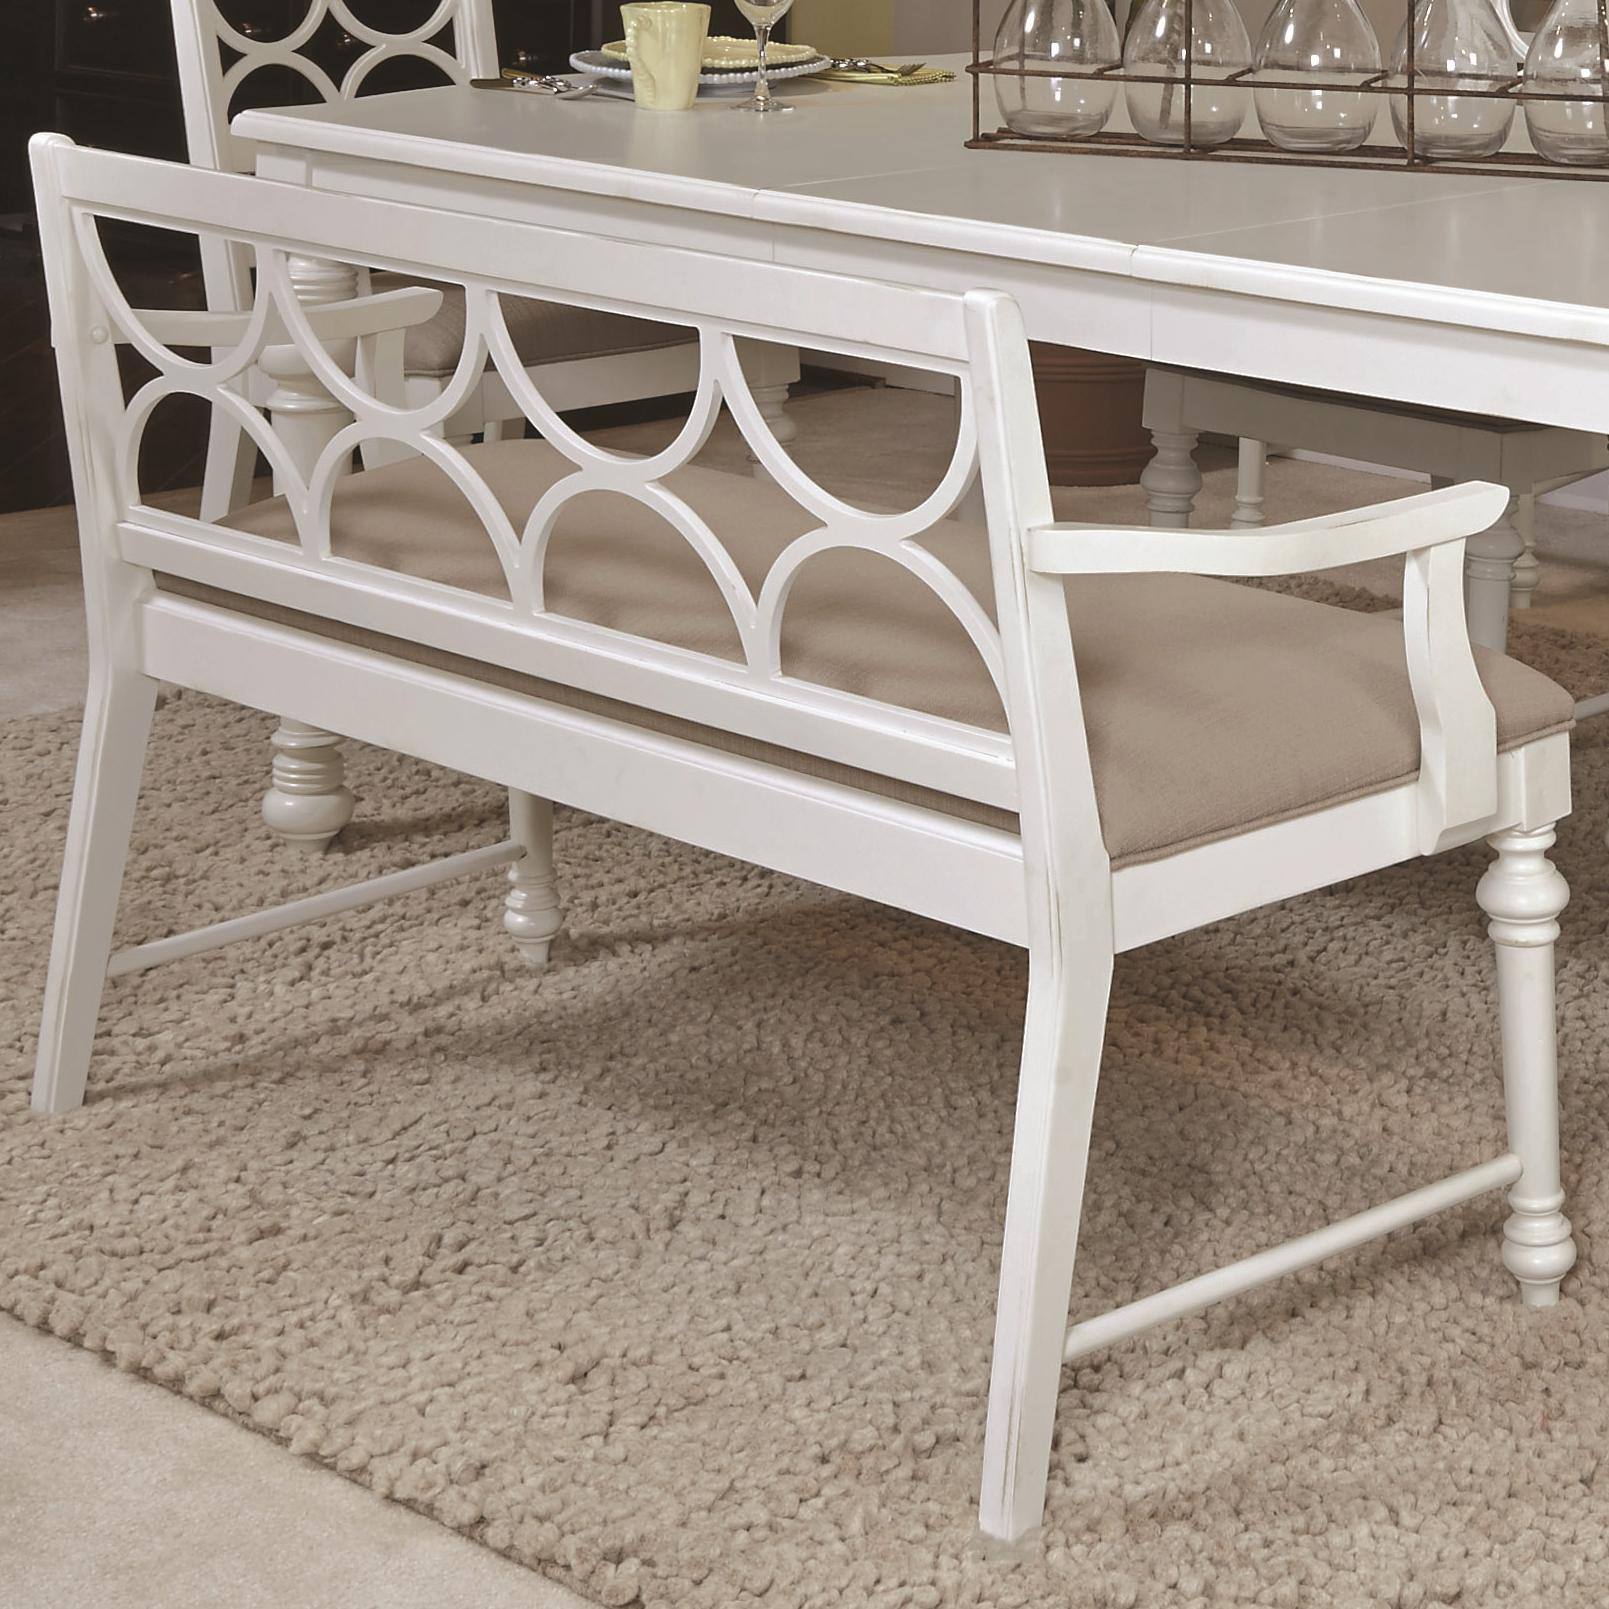 Upholstered dining bench with decorative wood back by american drew wolf and gardiner wolf Decorative benches